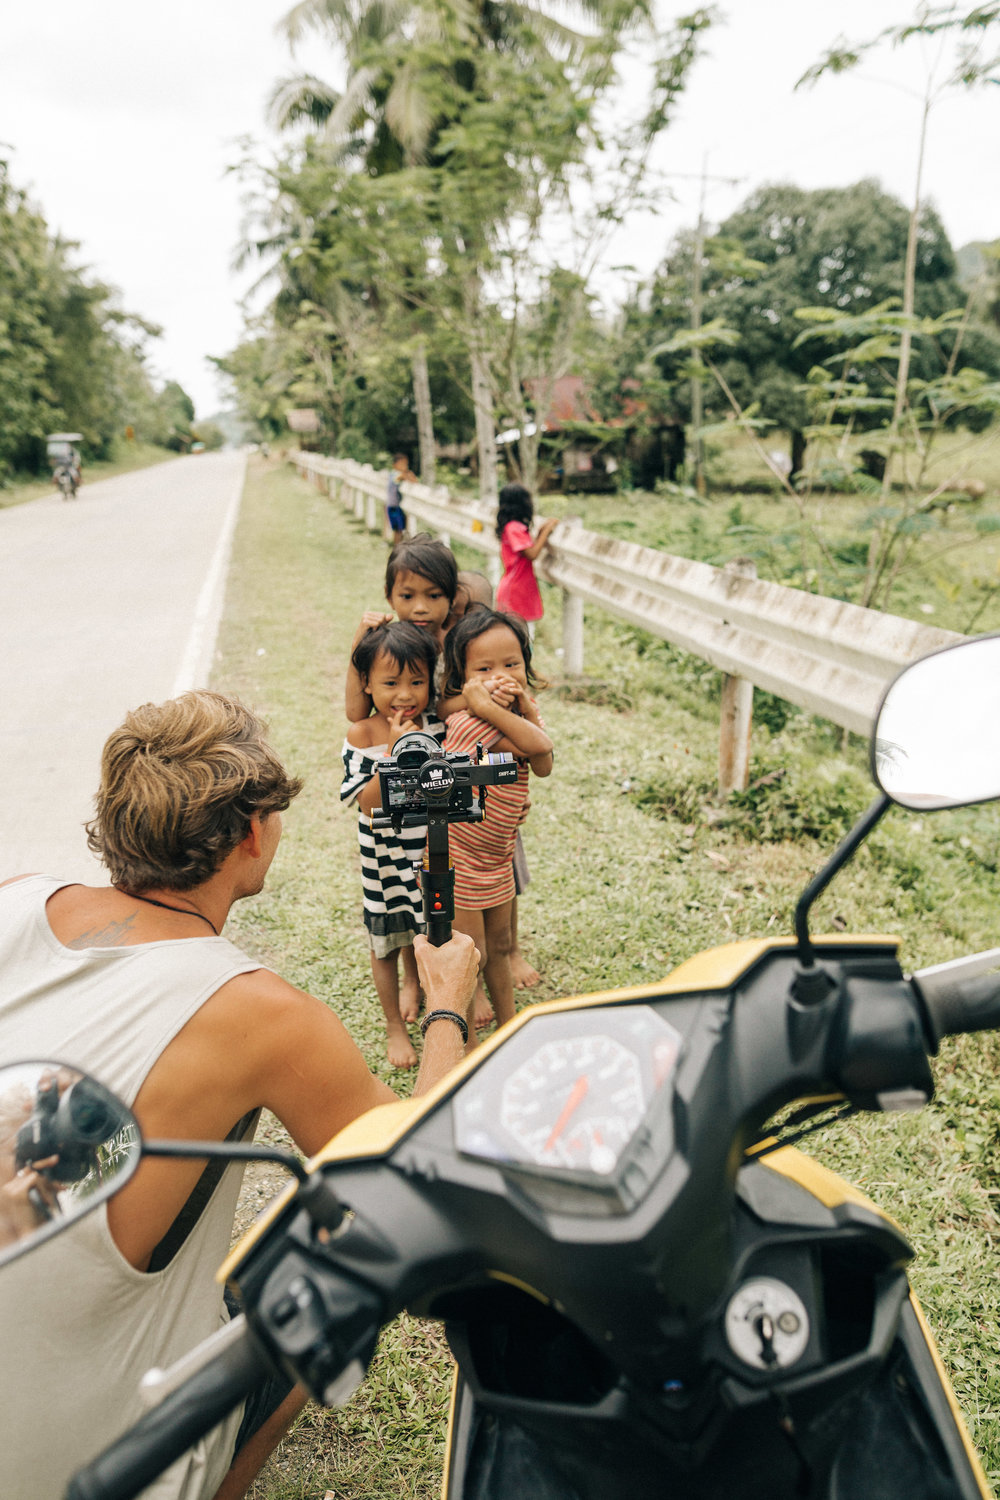 Jack filming the kids of the Philippines